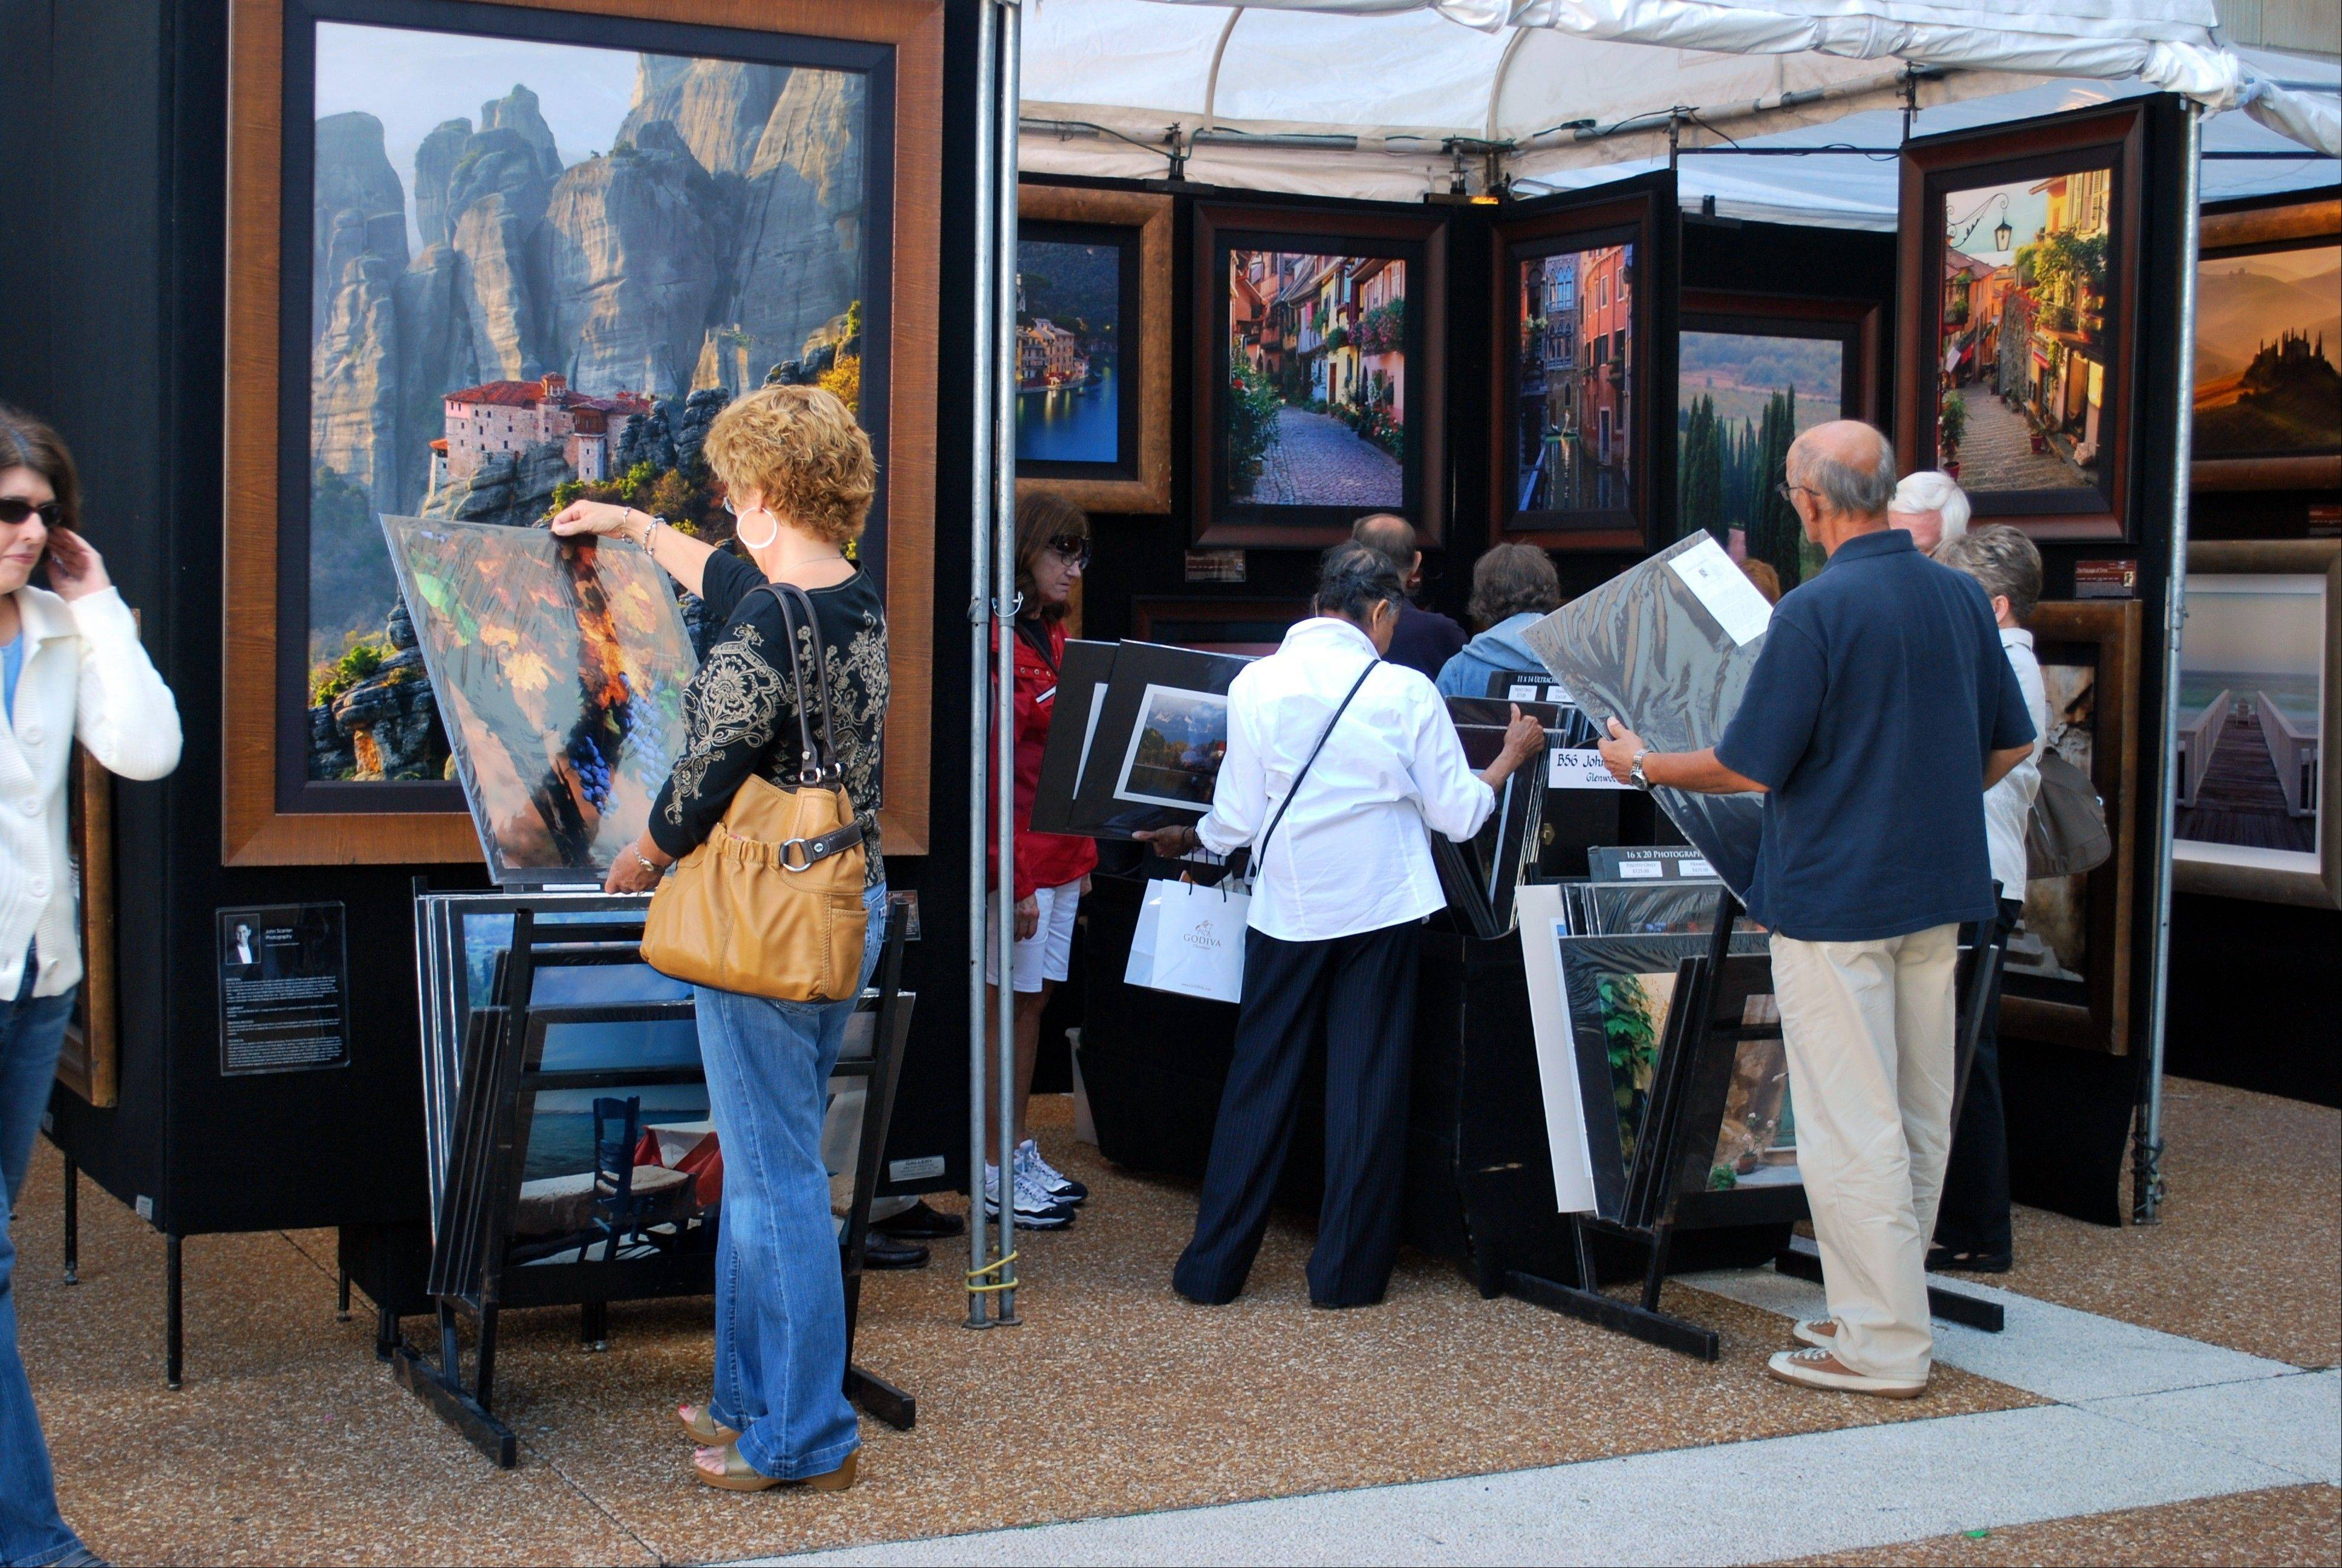 The 49th Annual Fine Art Exhibition is at the Oakbrook Center this weekend.